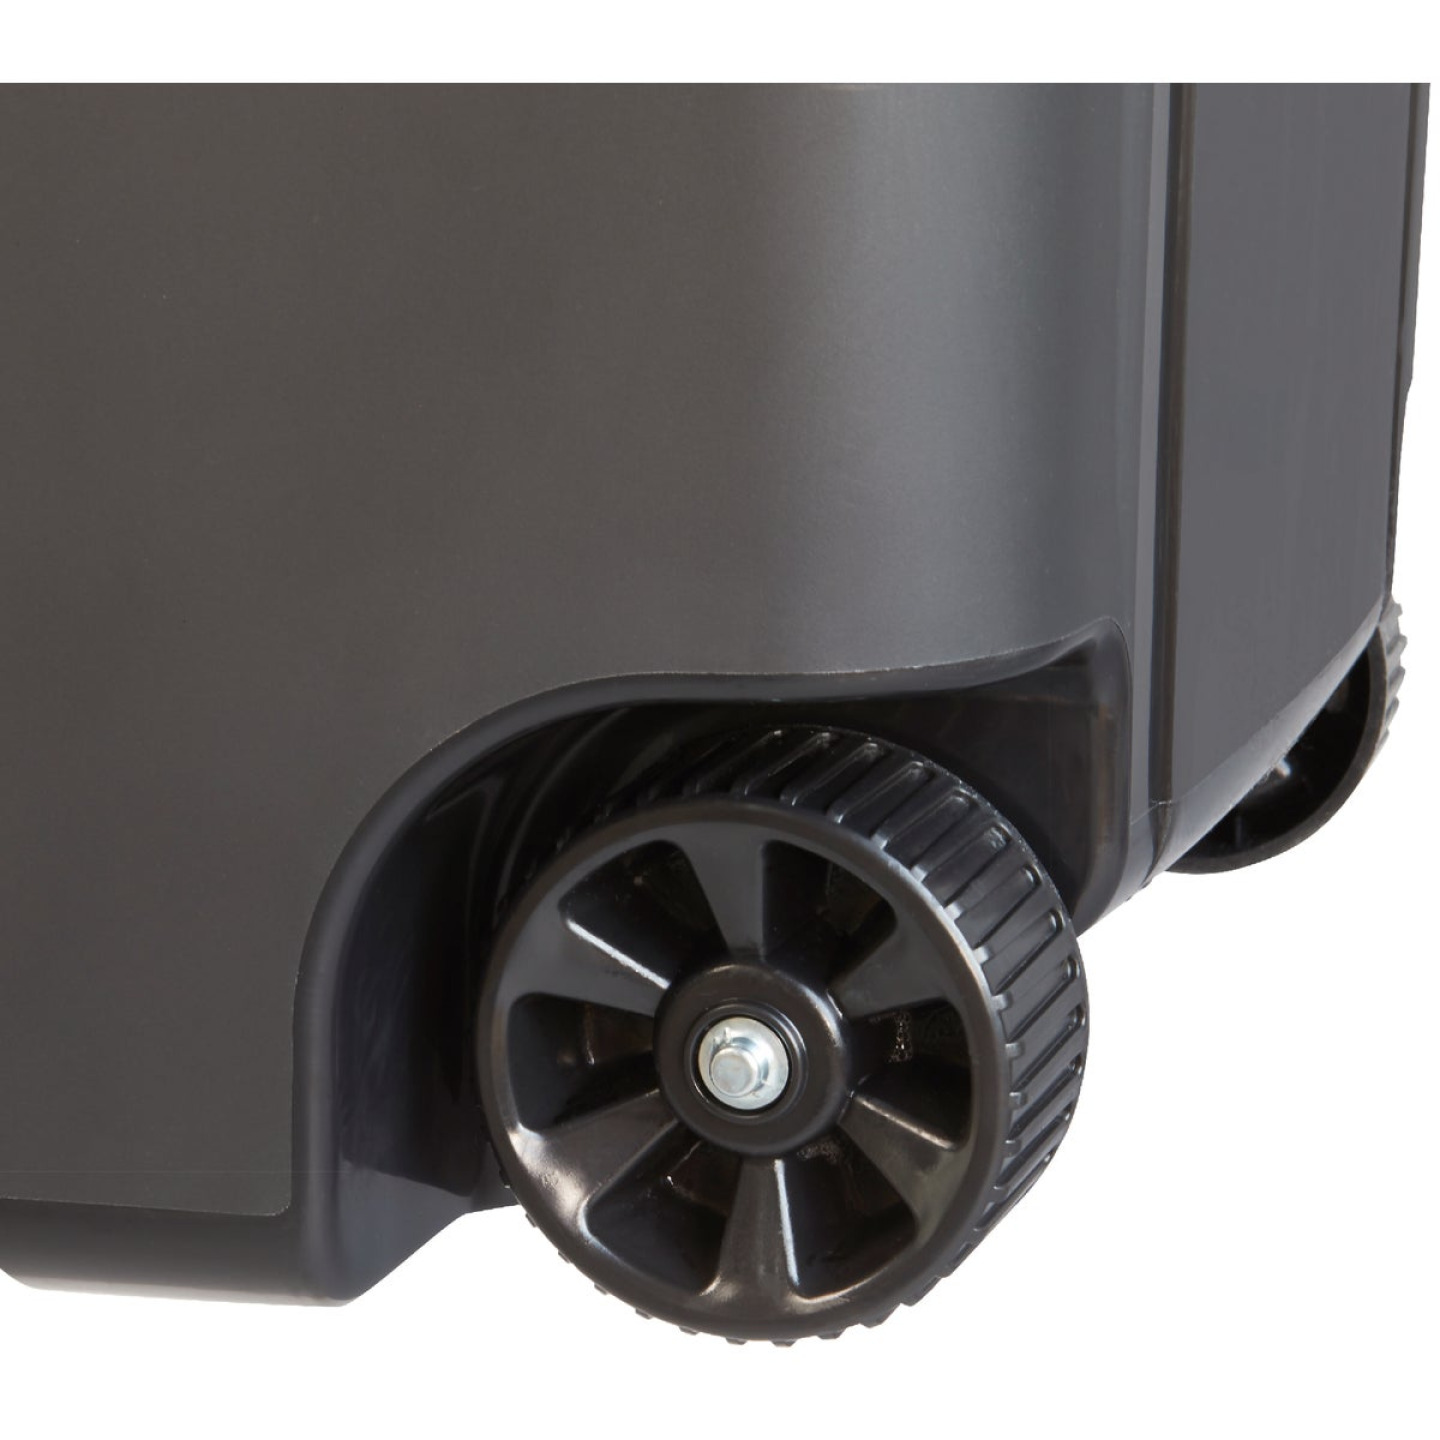 United Solutions Rough and Rugged 45 Gal. Wheeled Trash Can with Attached Lid Image 4